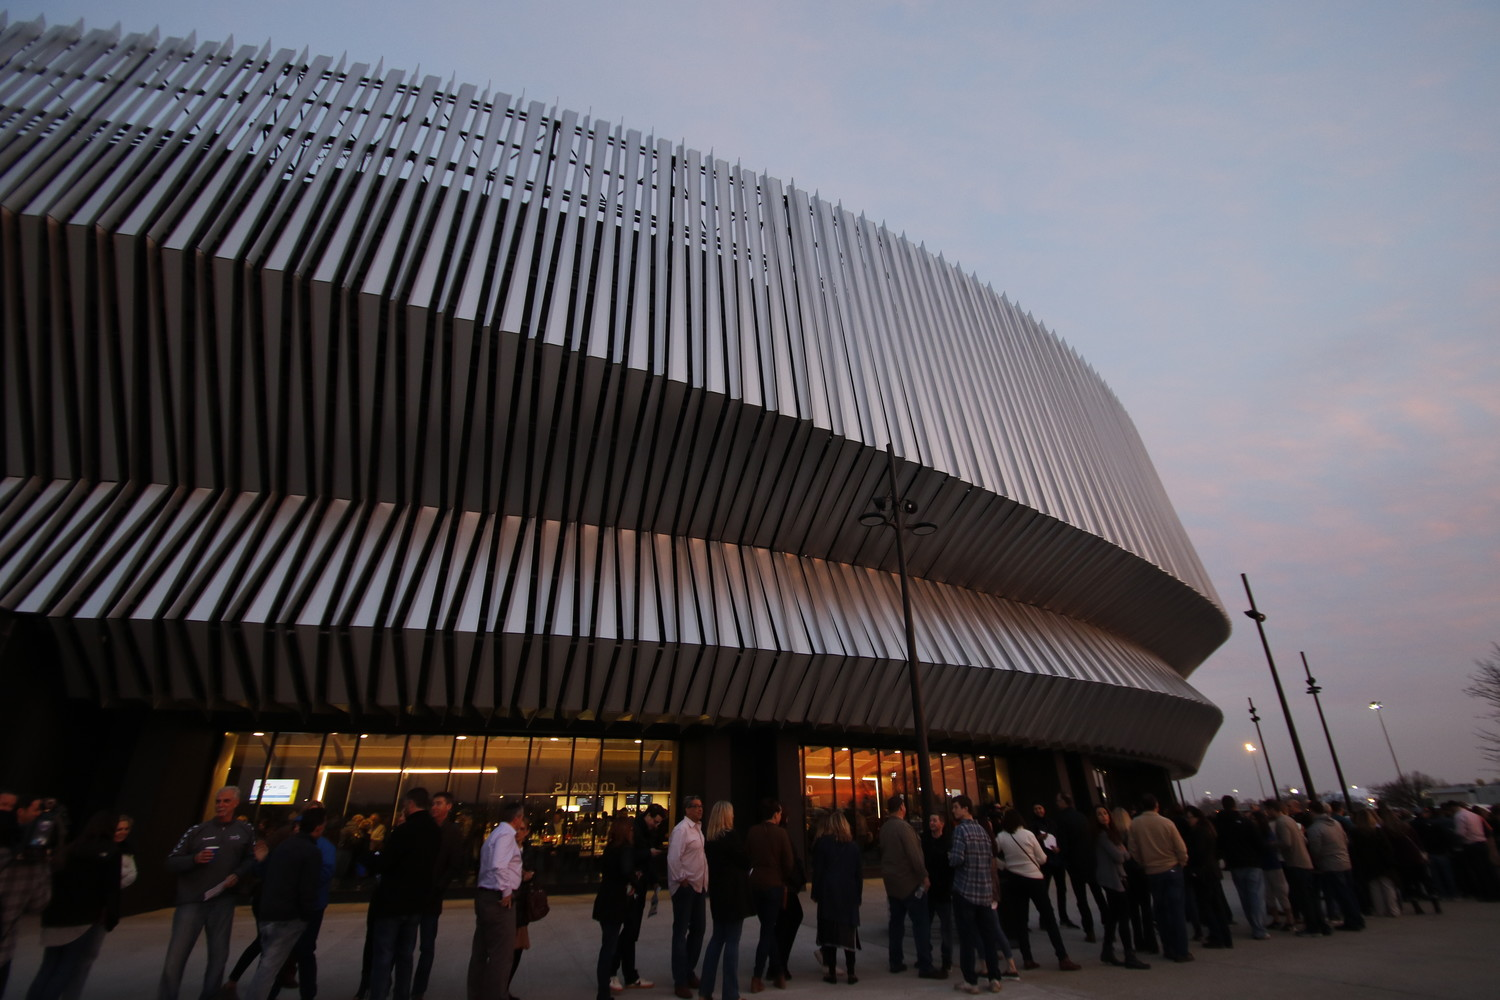 Nassau County has picked RXR Realty and BSE Global to build on 77 acres surrounding the Nassau Coliseum